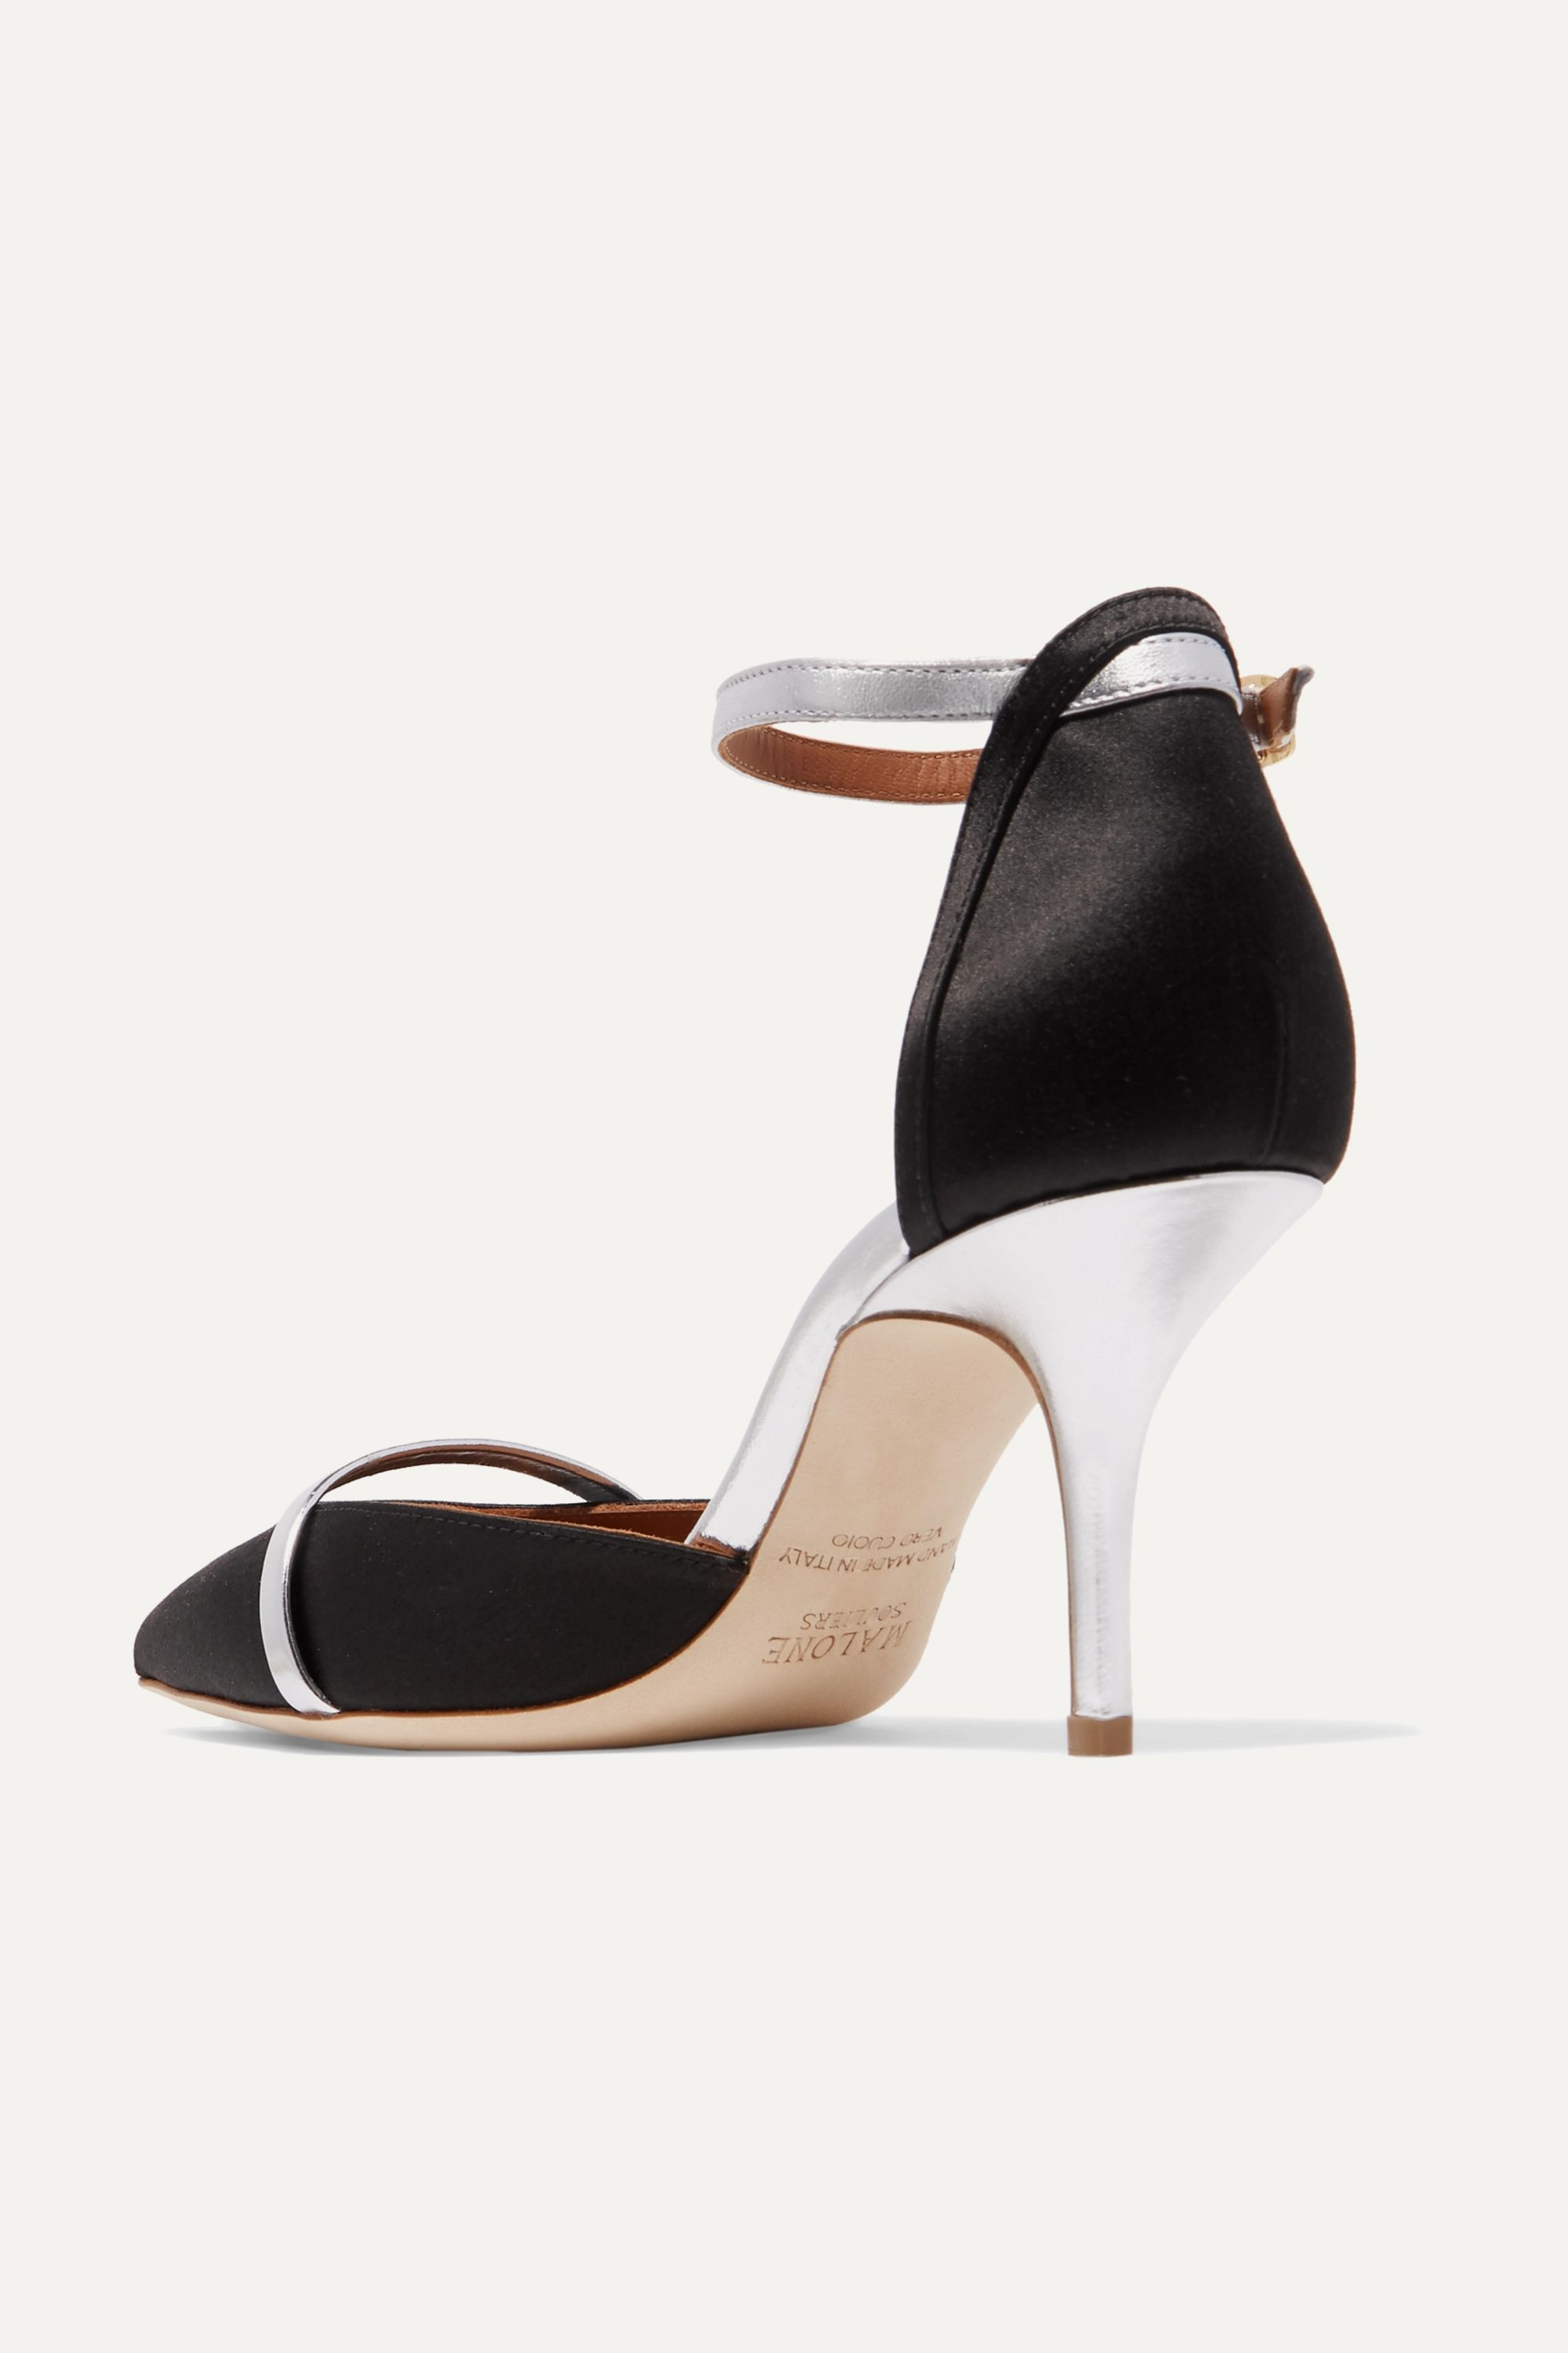 Malone Souliers Booboo 70 metallic leather-trimmed satin pumps